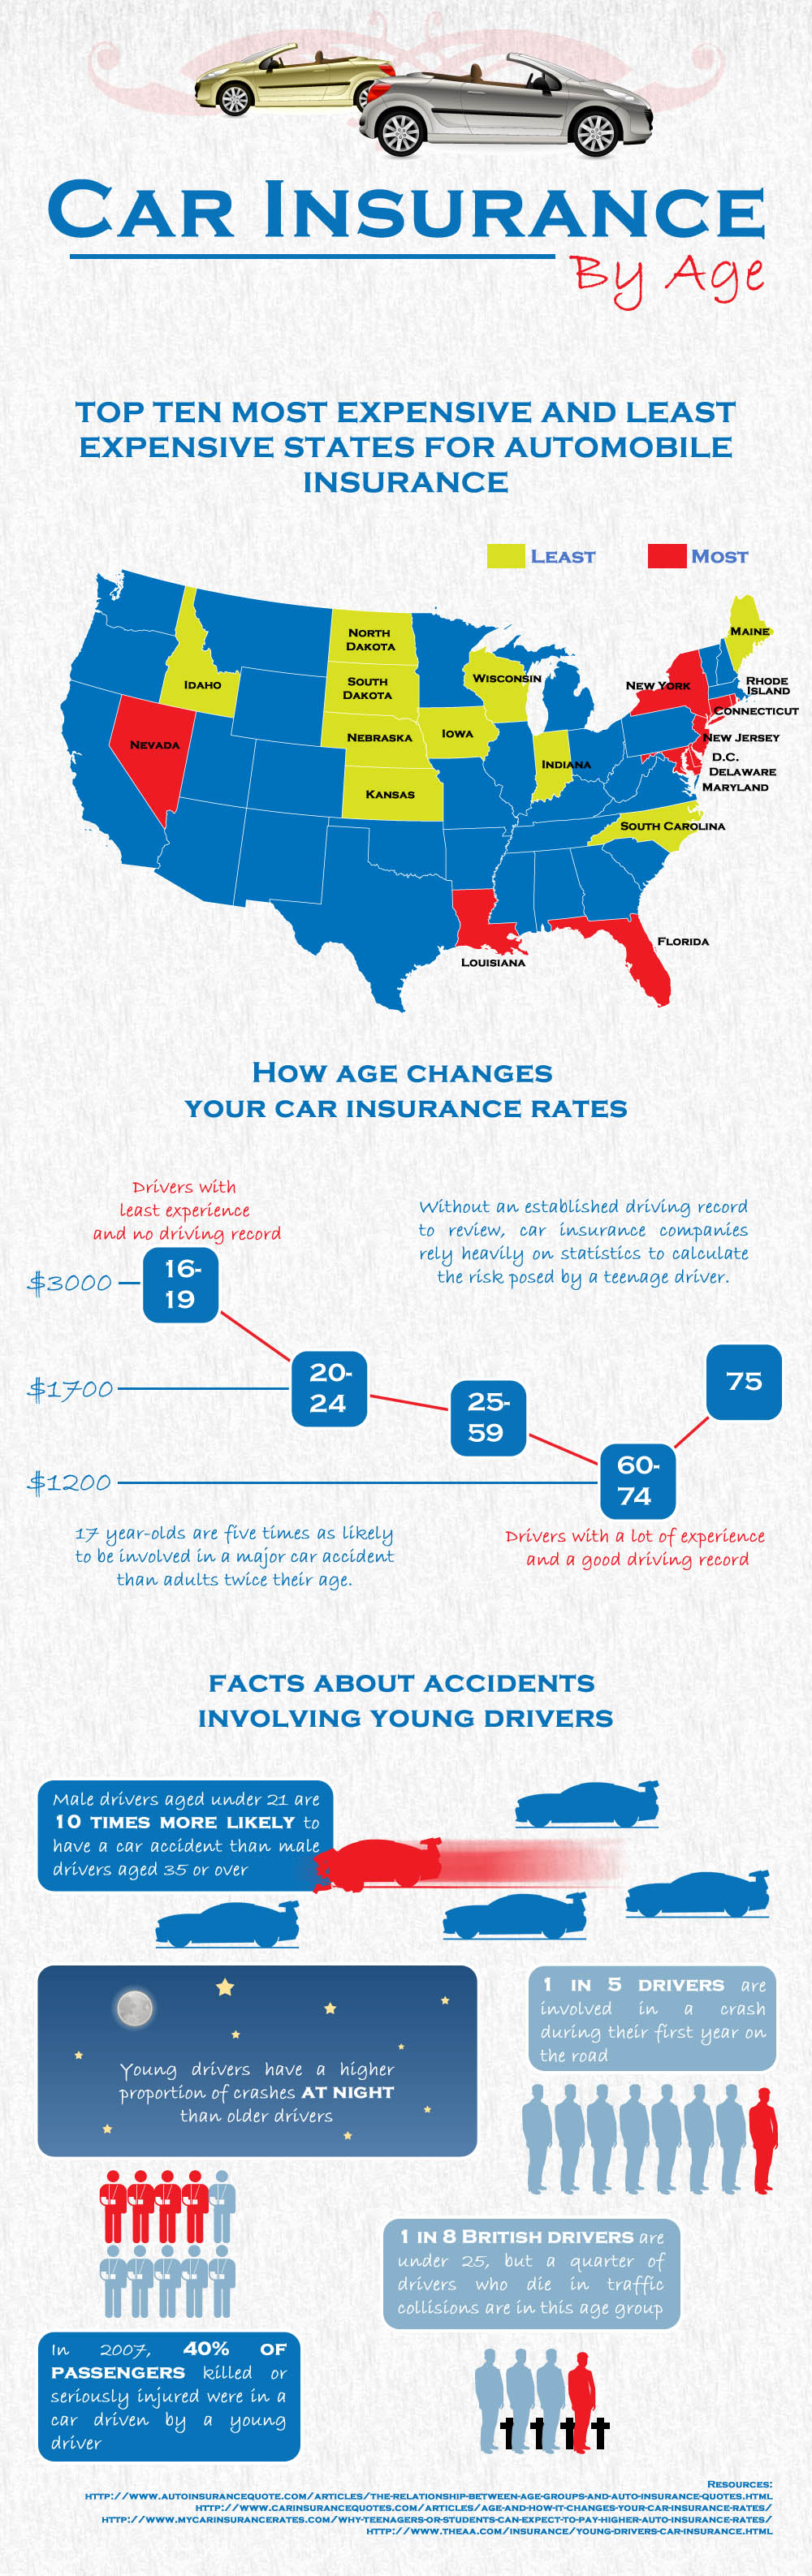 Car Insurance By Age [INFOGRAPHIC] | Infographic List